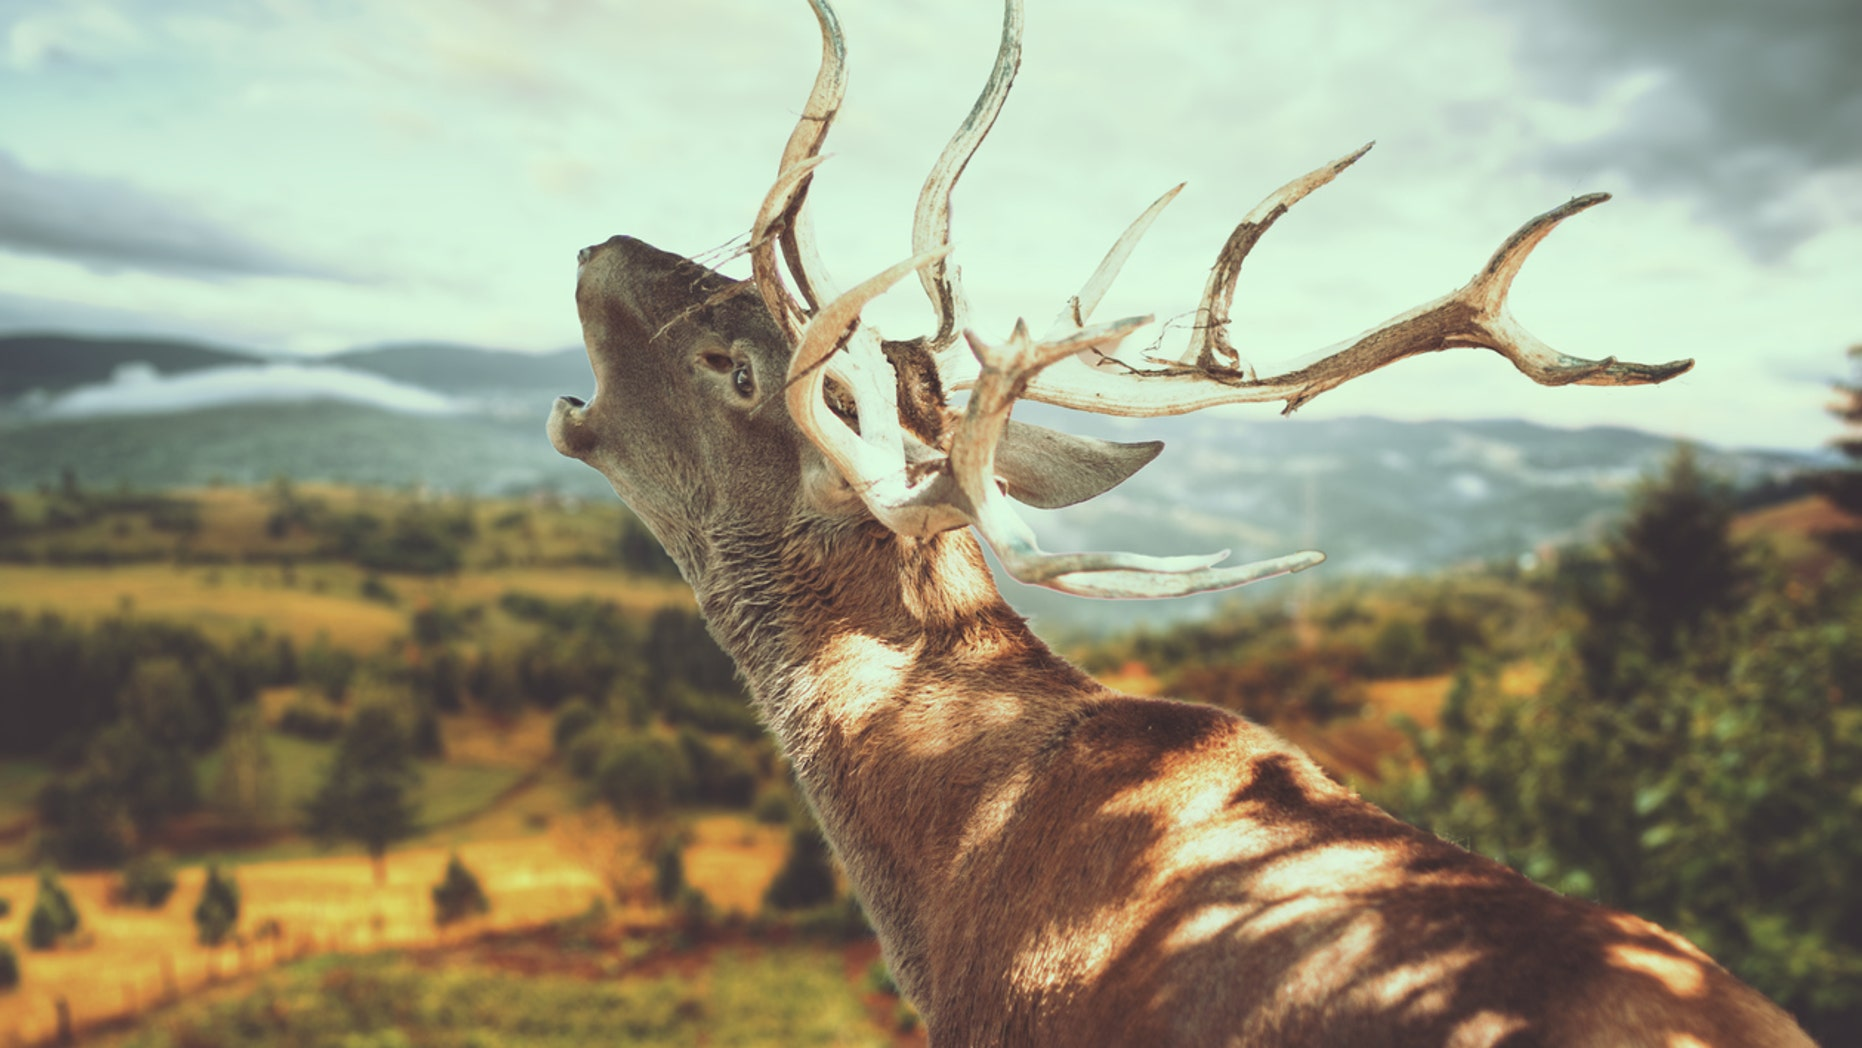 Chronic wasting disease has the potential to decimate populations, and it's spreading across the United States.